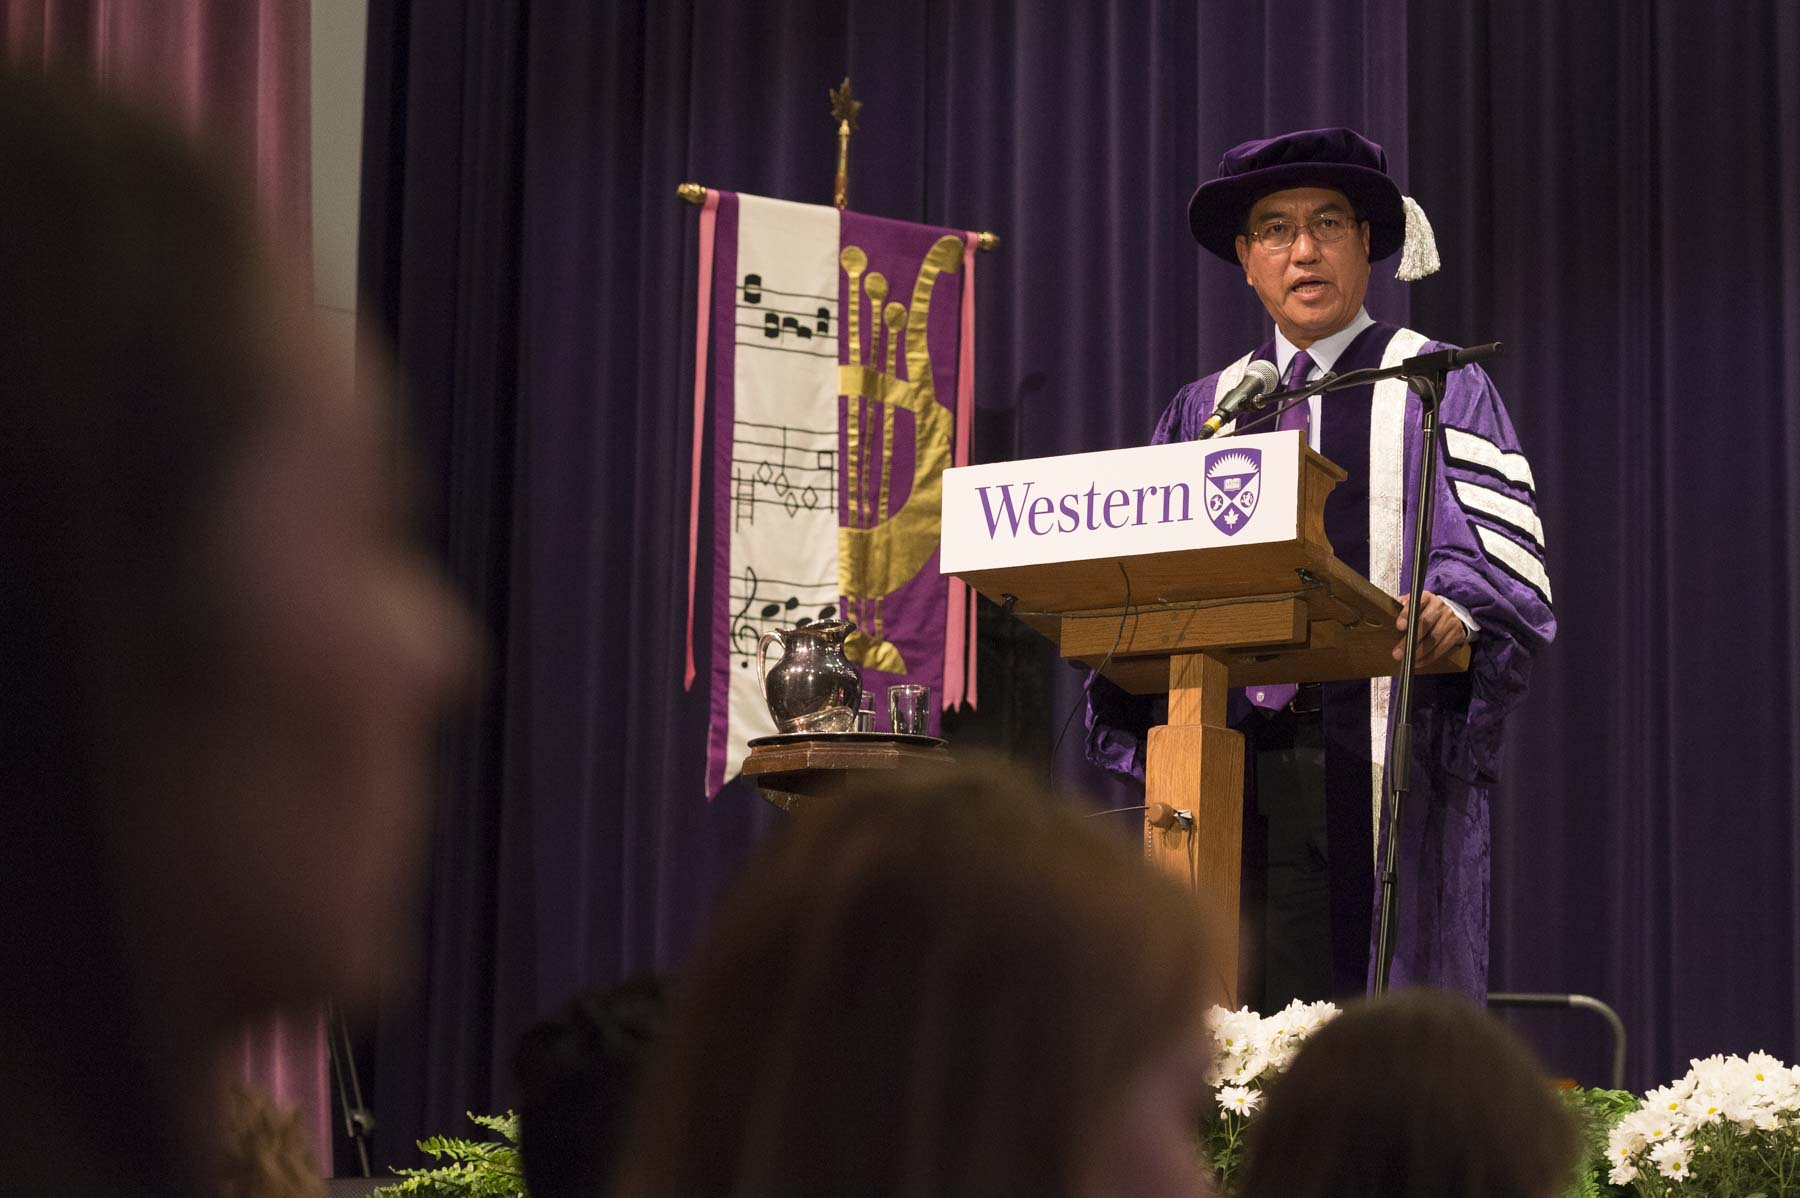 Western University's president and vice-chancellor, Mr. Amit Chakma, delivered opening remarks.